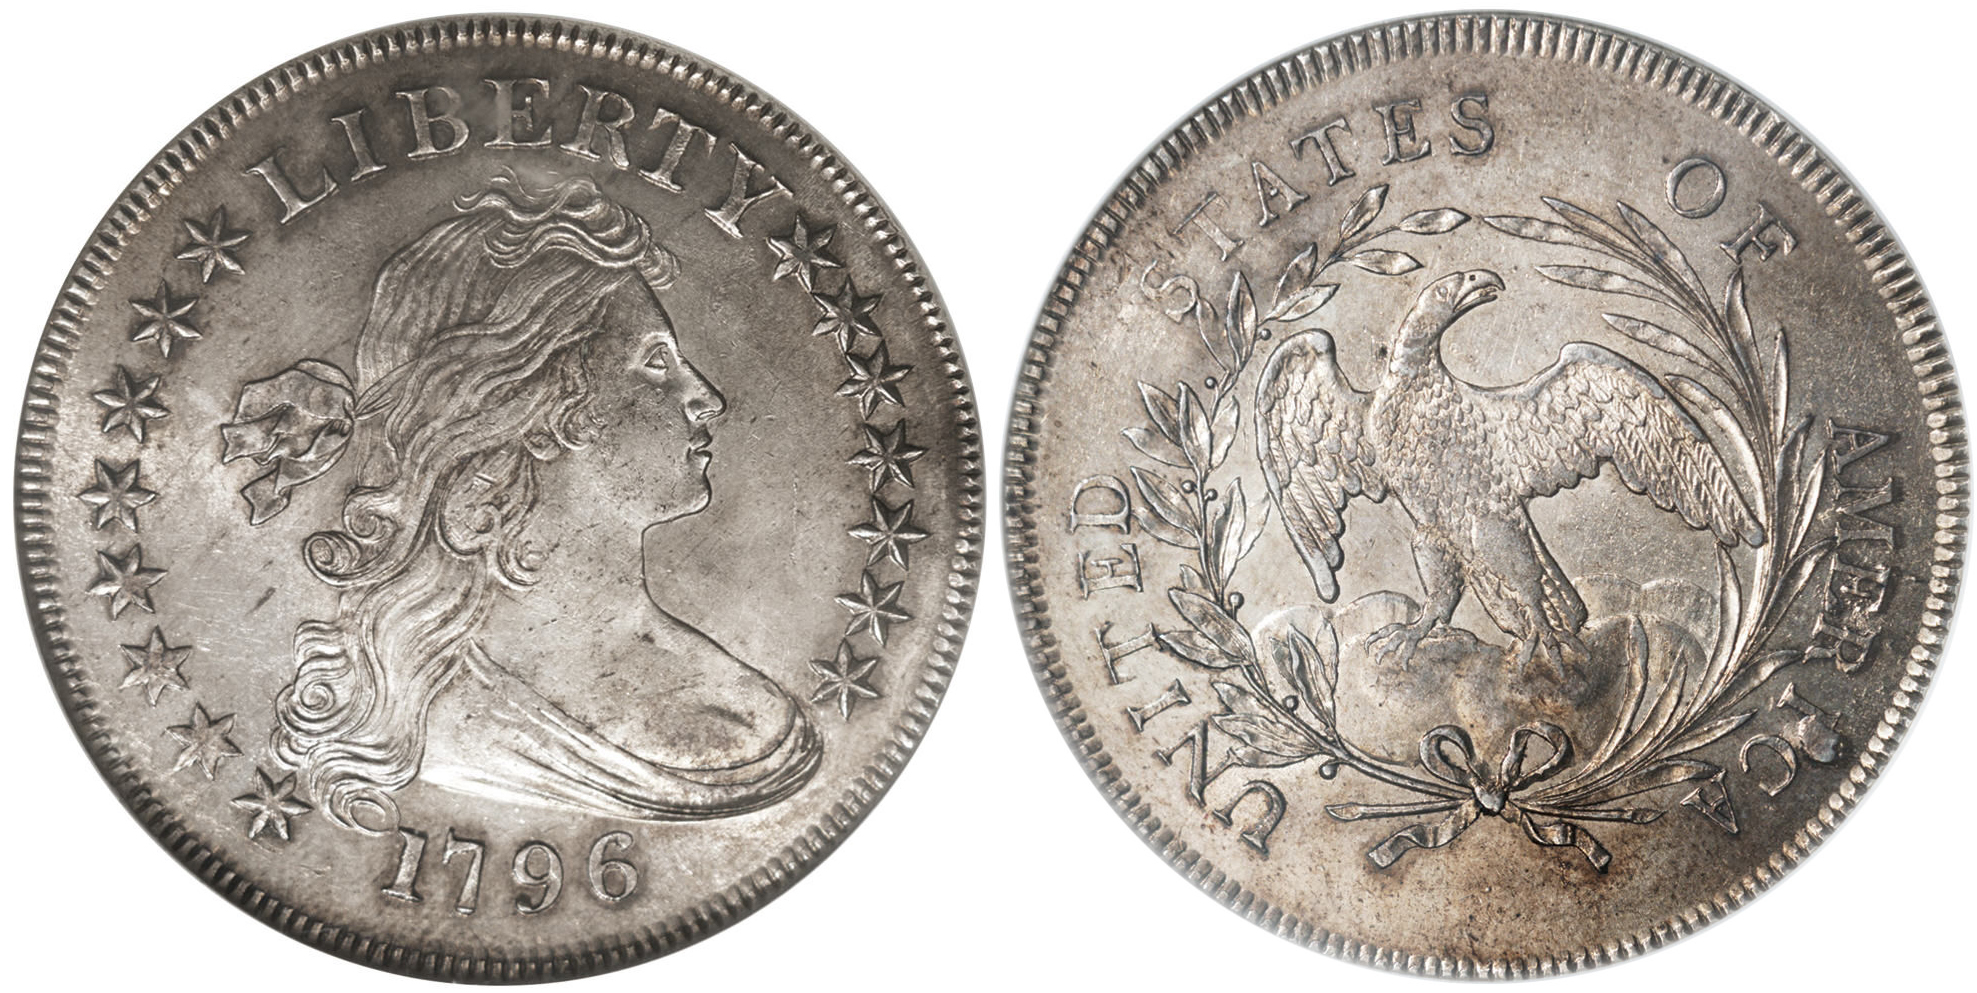 1796 Authentic Draped Bust Silver Dollar Image